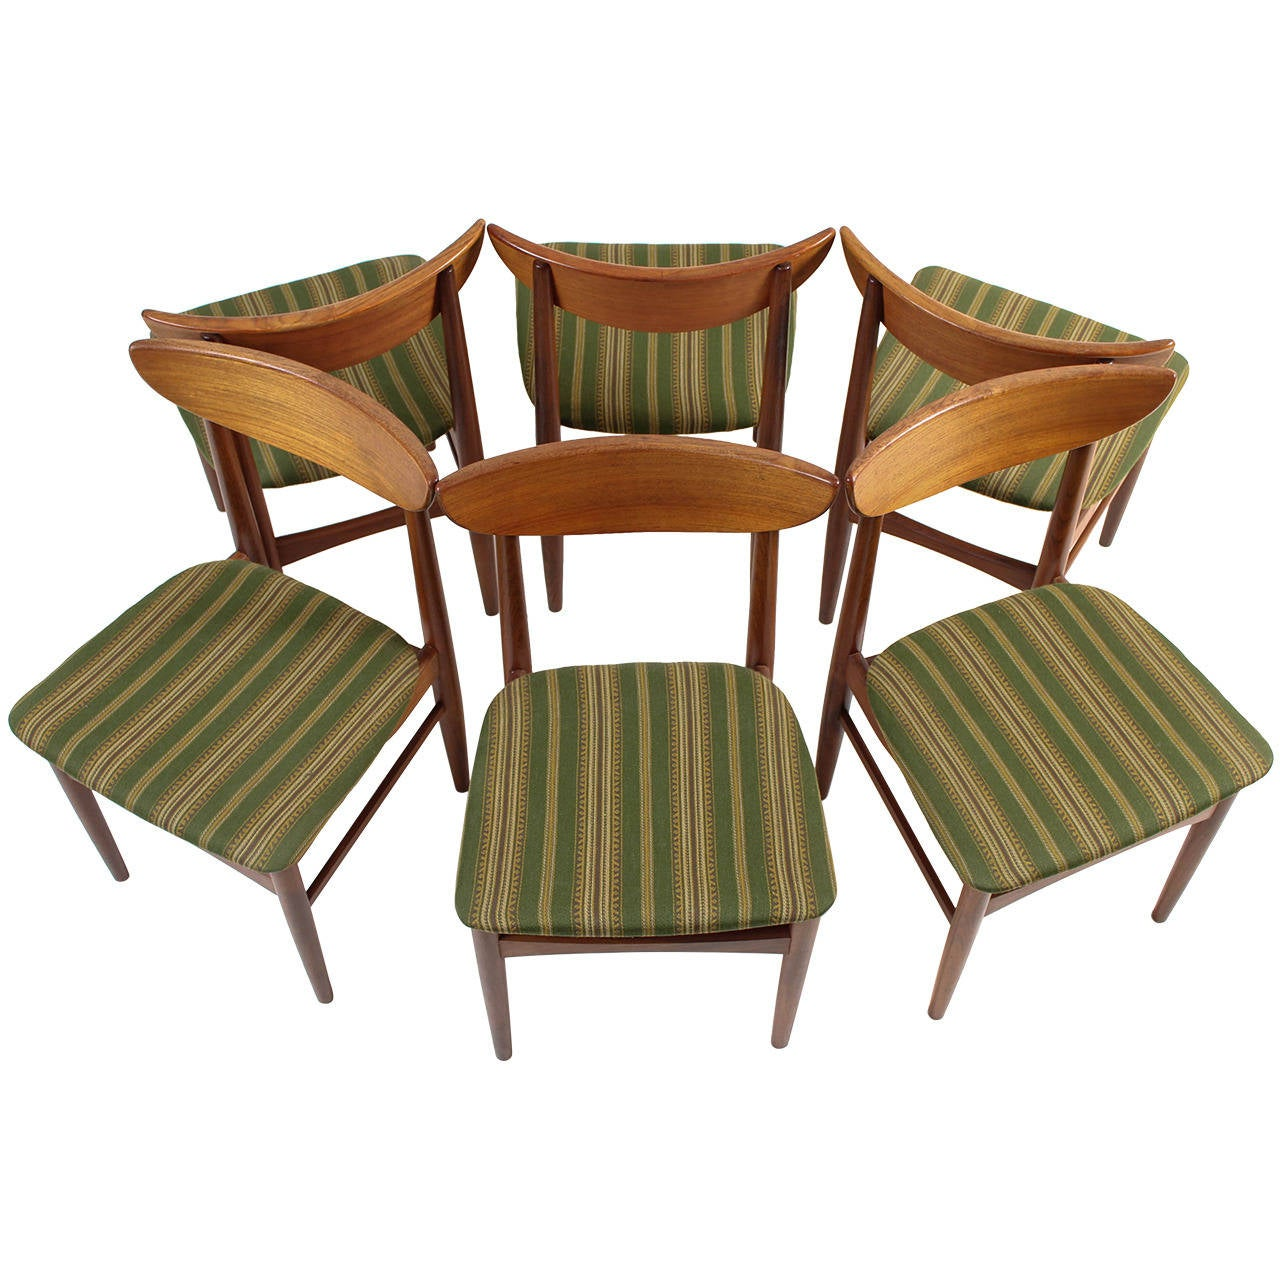 Set Of Six Solid Teak Chairs By A/S Skovby Møbelfabrik, Denmark 1